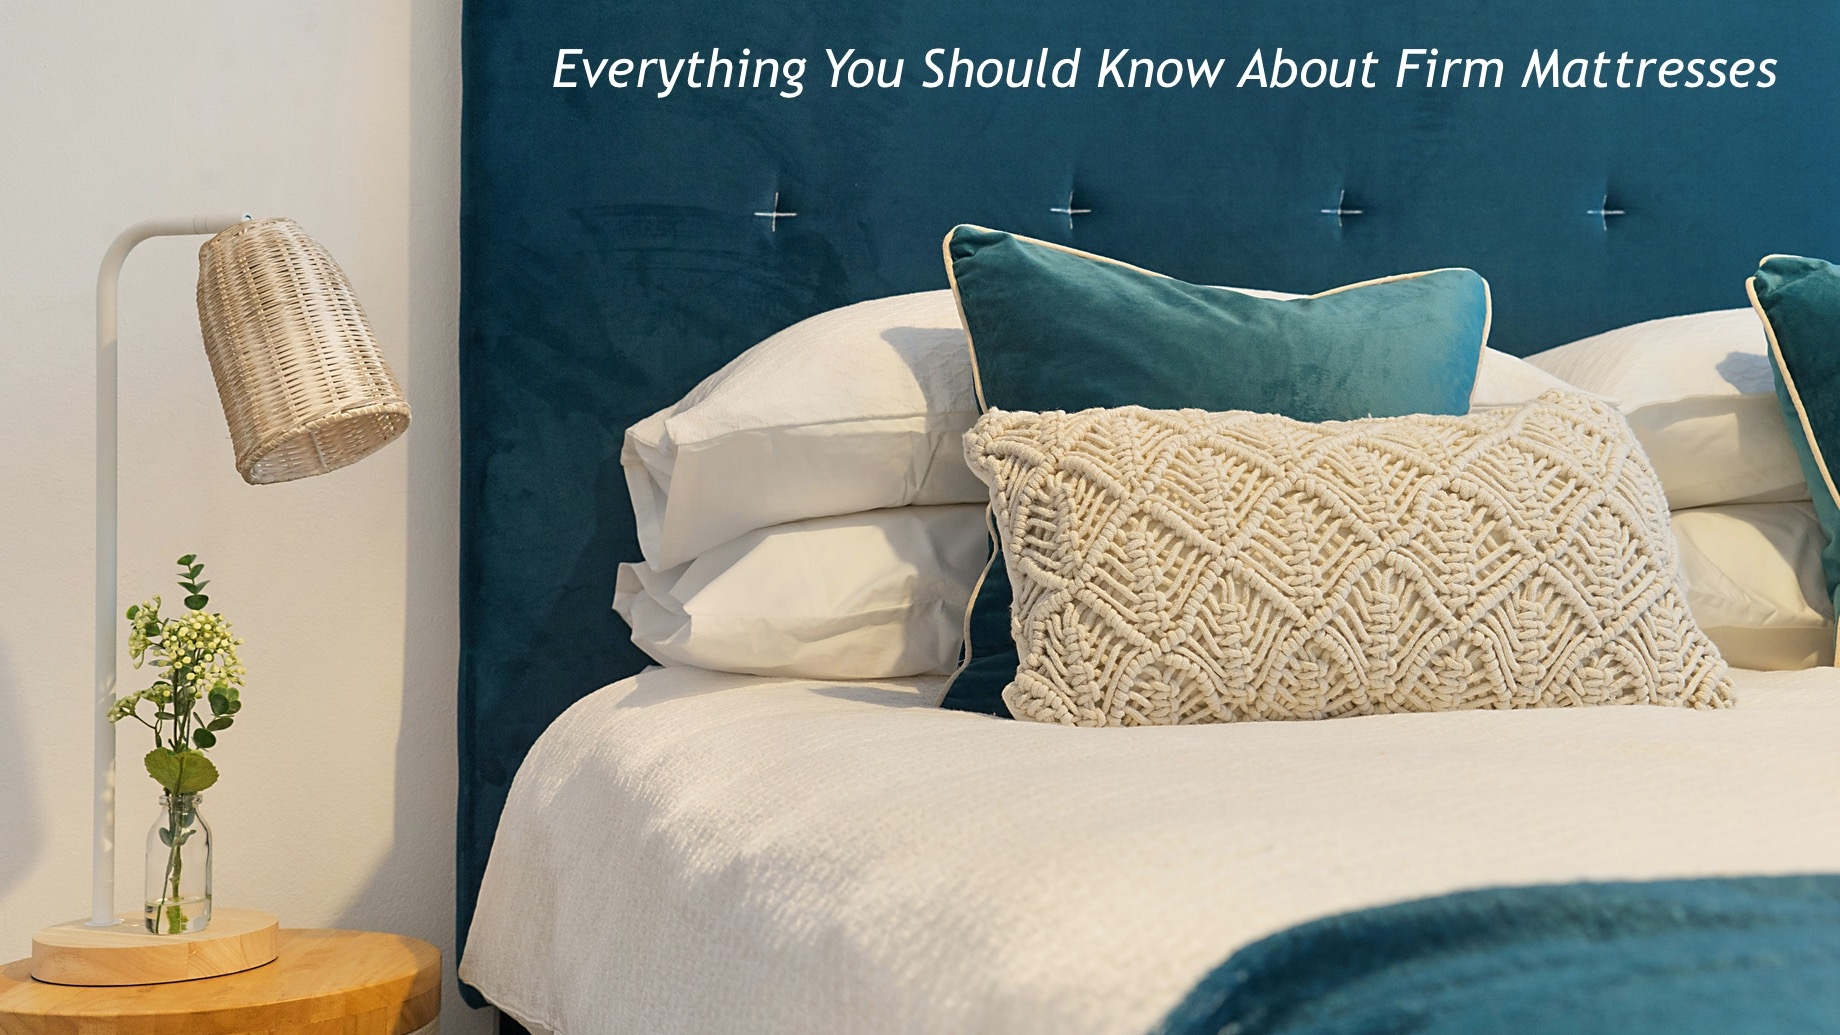 Everything You Should Know About Firm Mattresses